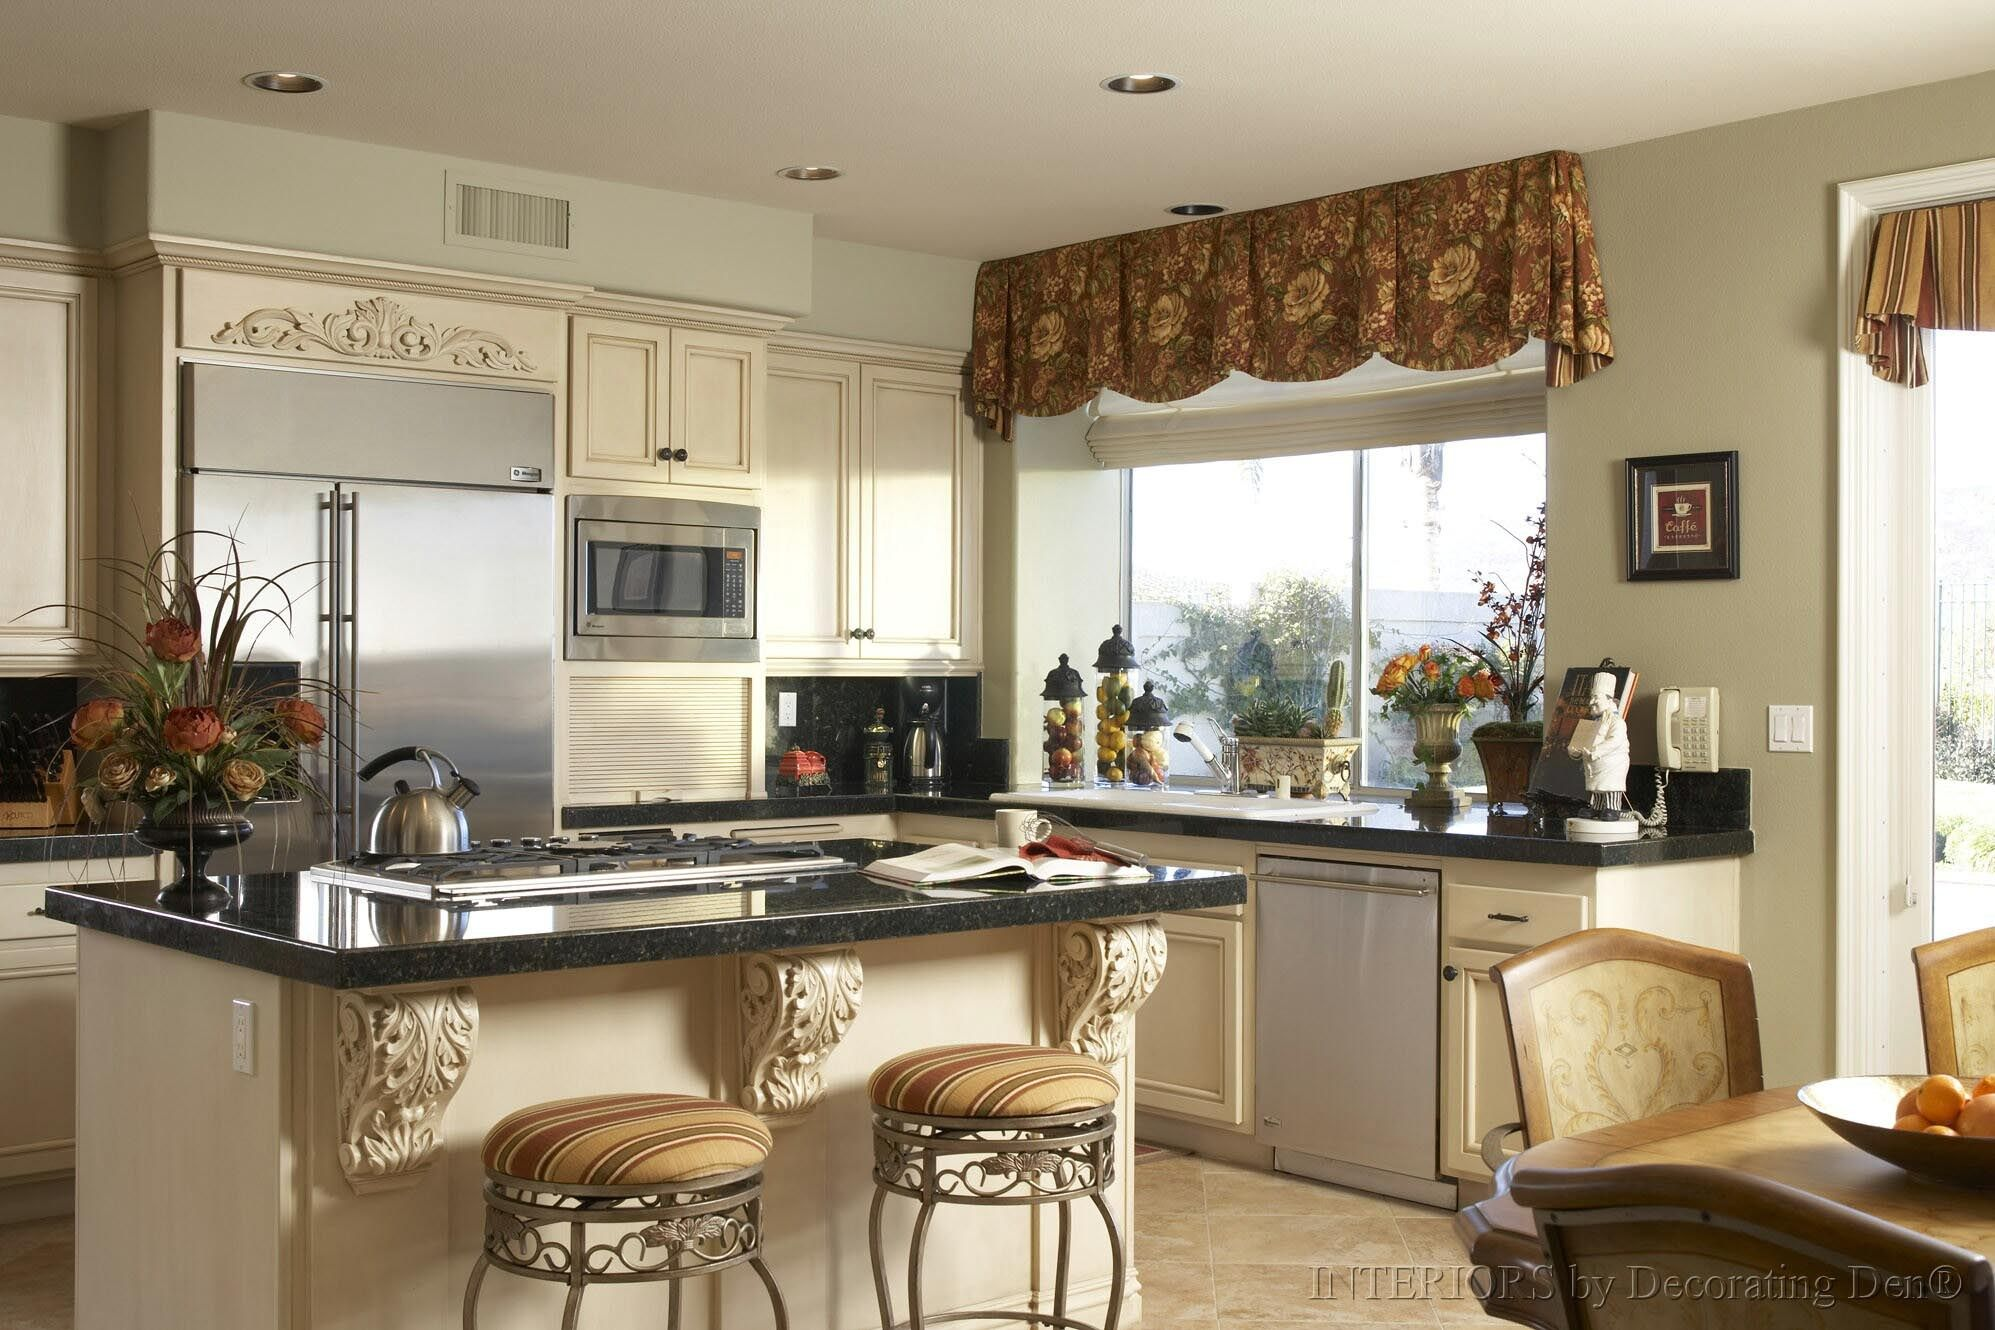 L shaped window curtain ideas  decorate design contemporary window treatments for kitchen intended